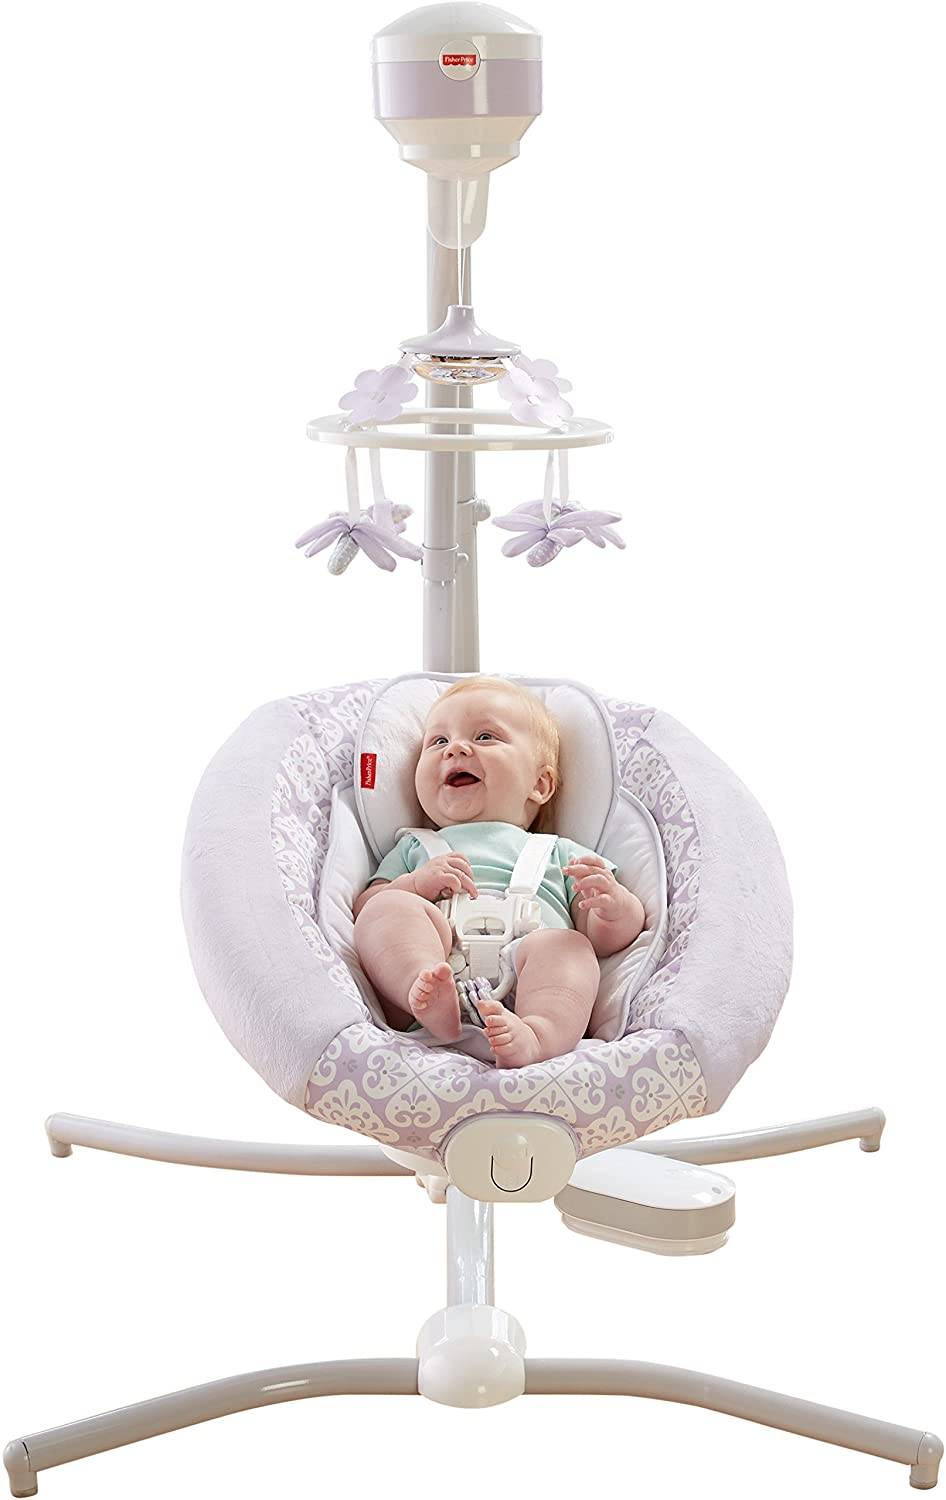 9 Best Fisher-Price Baby Swings Reviews of 2021 15